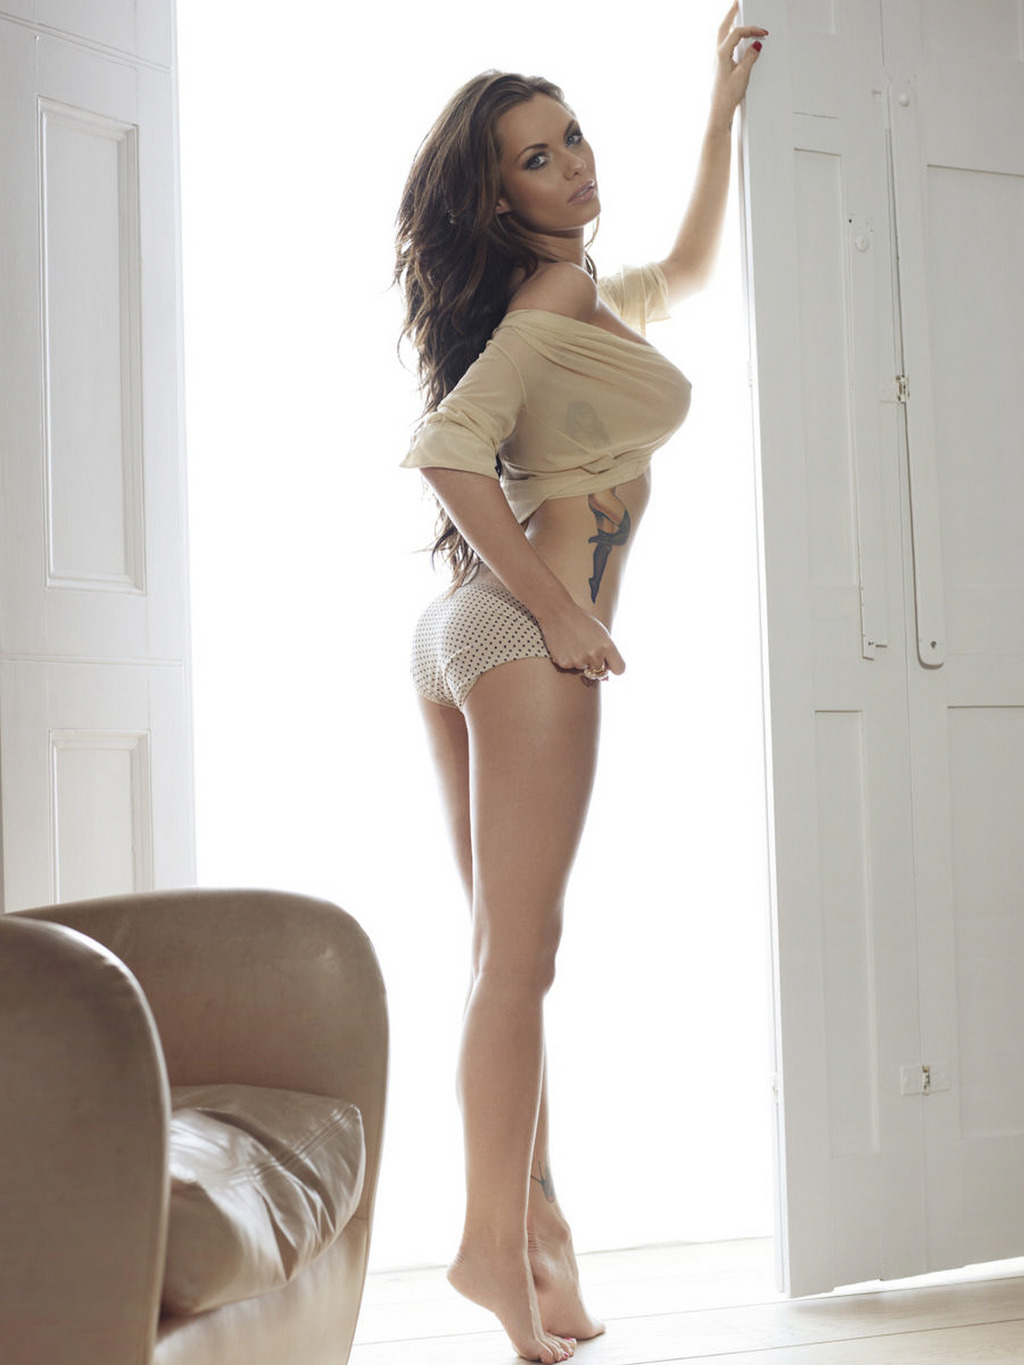 Holly peers topless photoshoot - 4 1